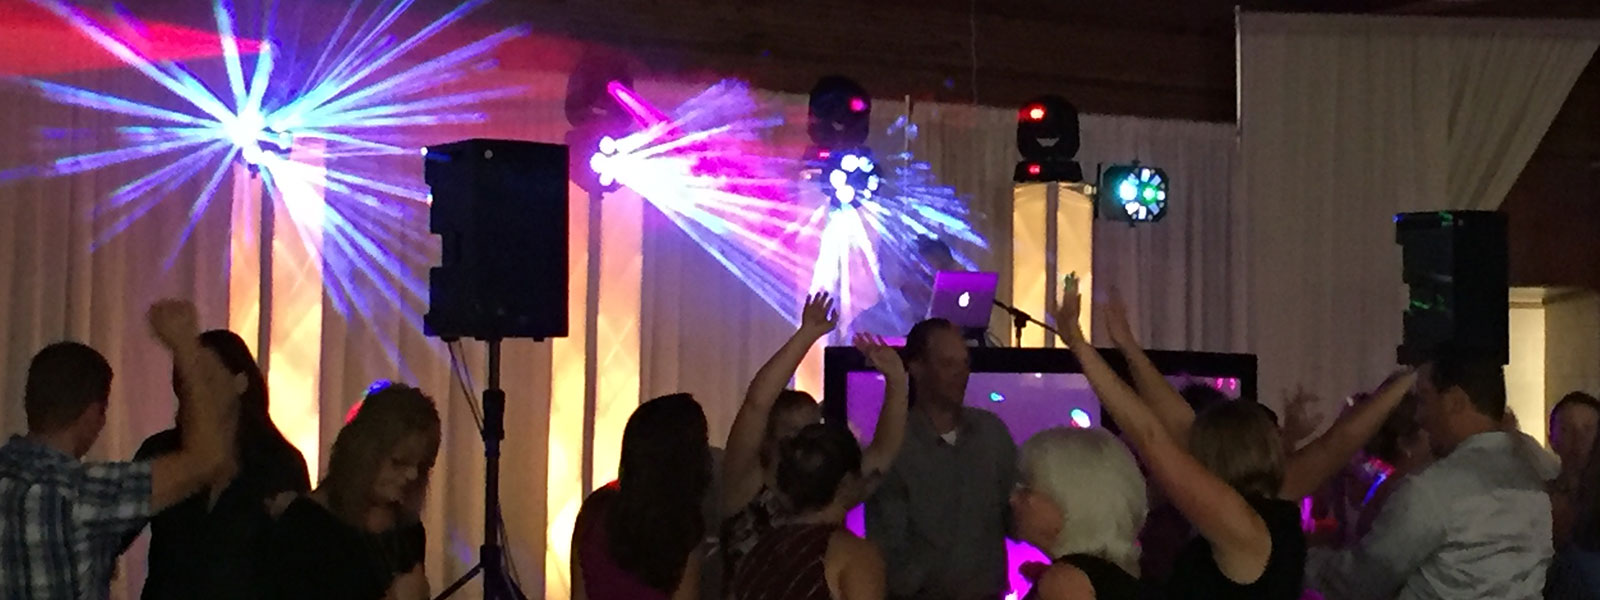 Wedding Dance Party - Party Hits Music and Light Show - Wisconsin DJ Dance Weddings Events